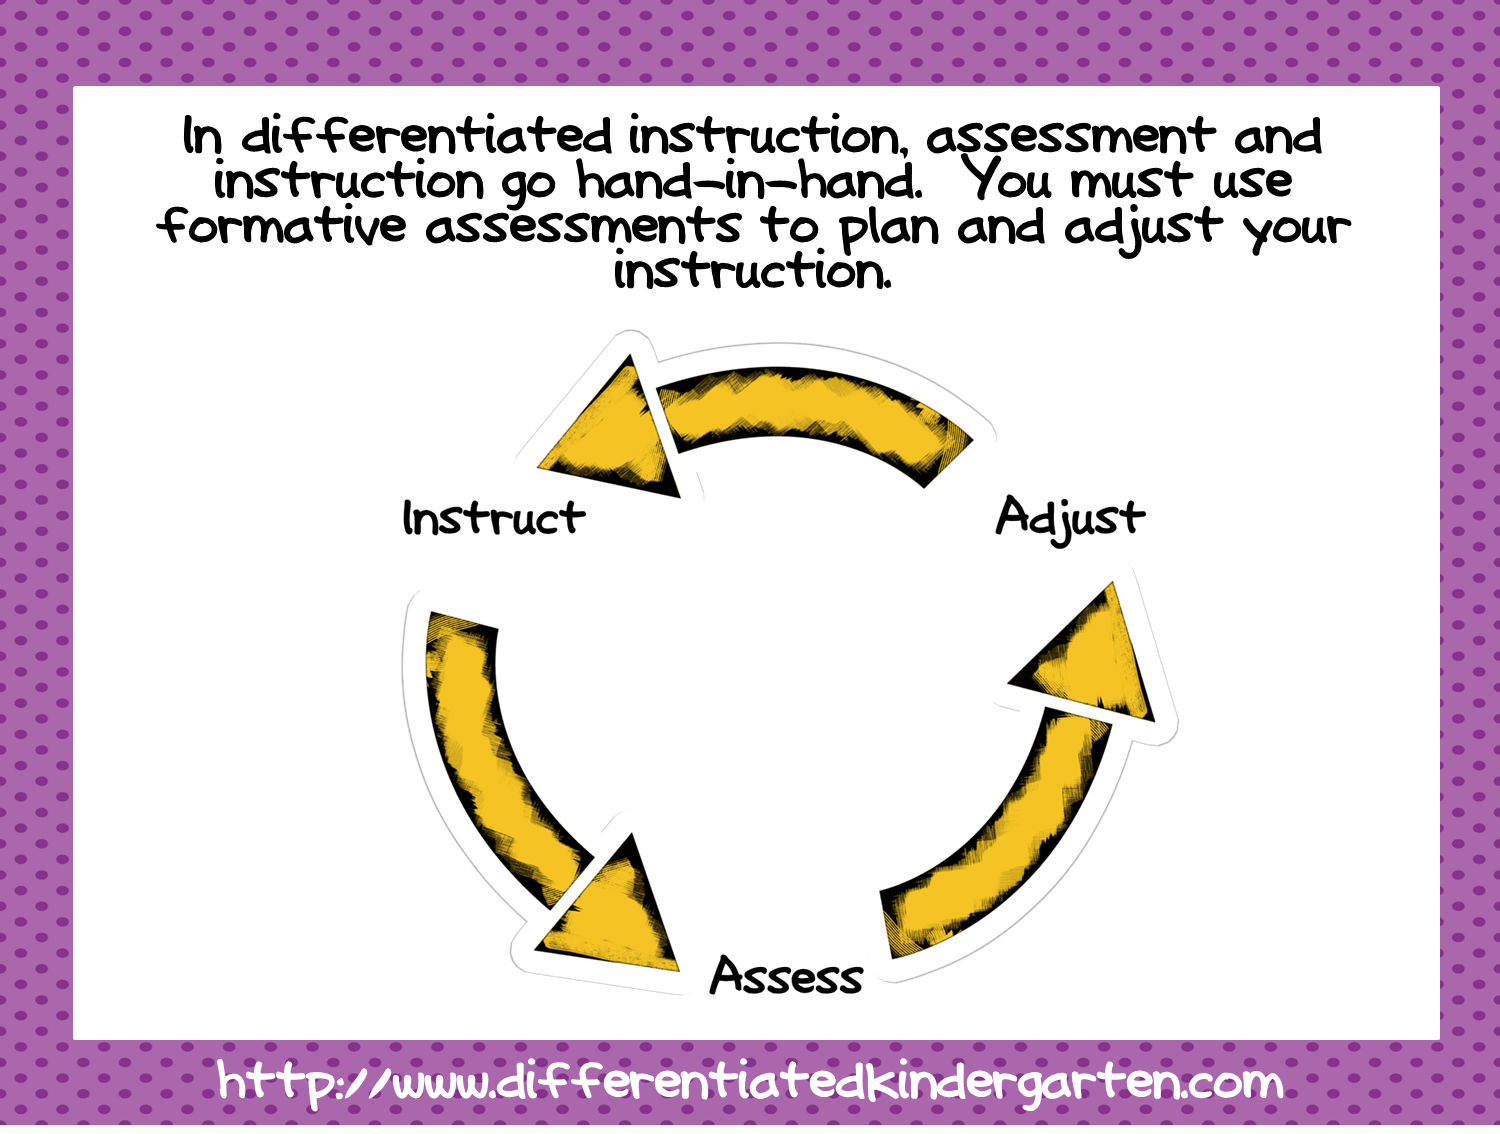 Differentiated Instruction And Assessment In The Classroom User